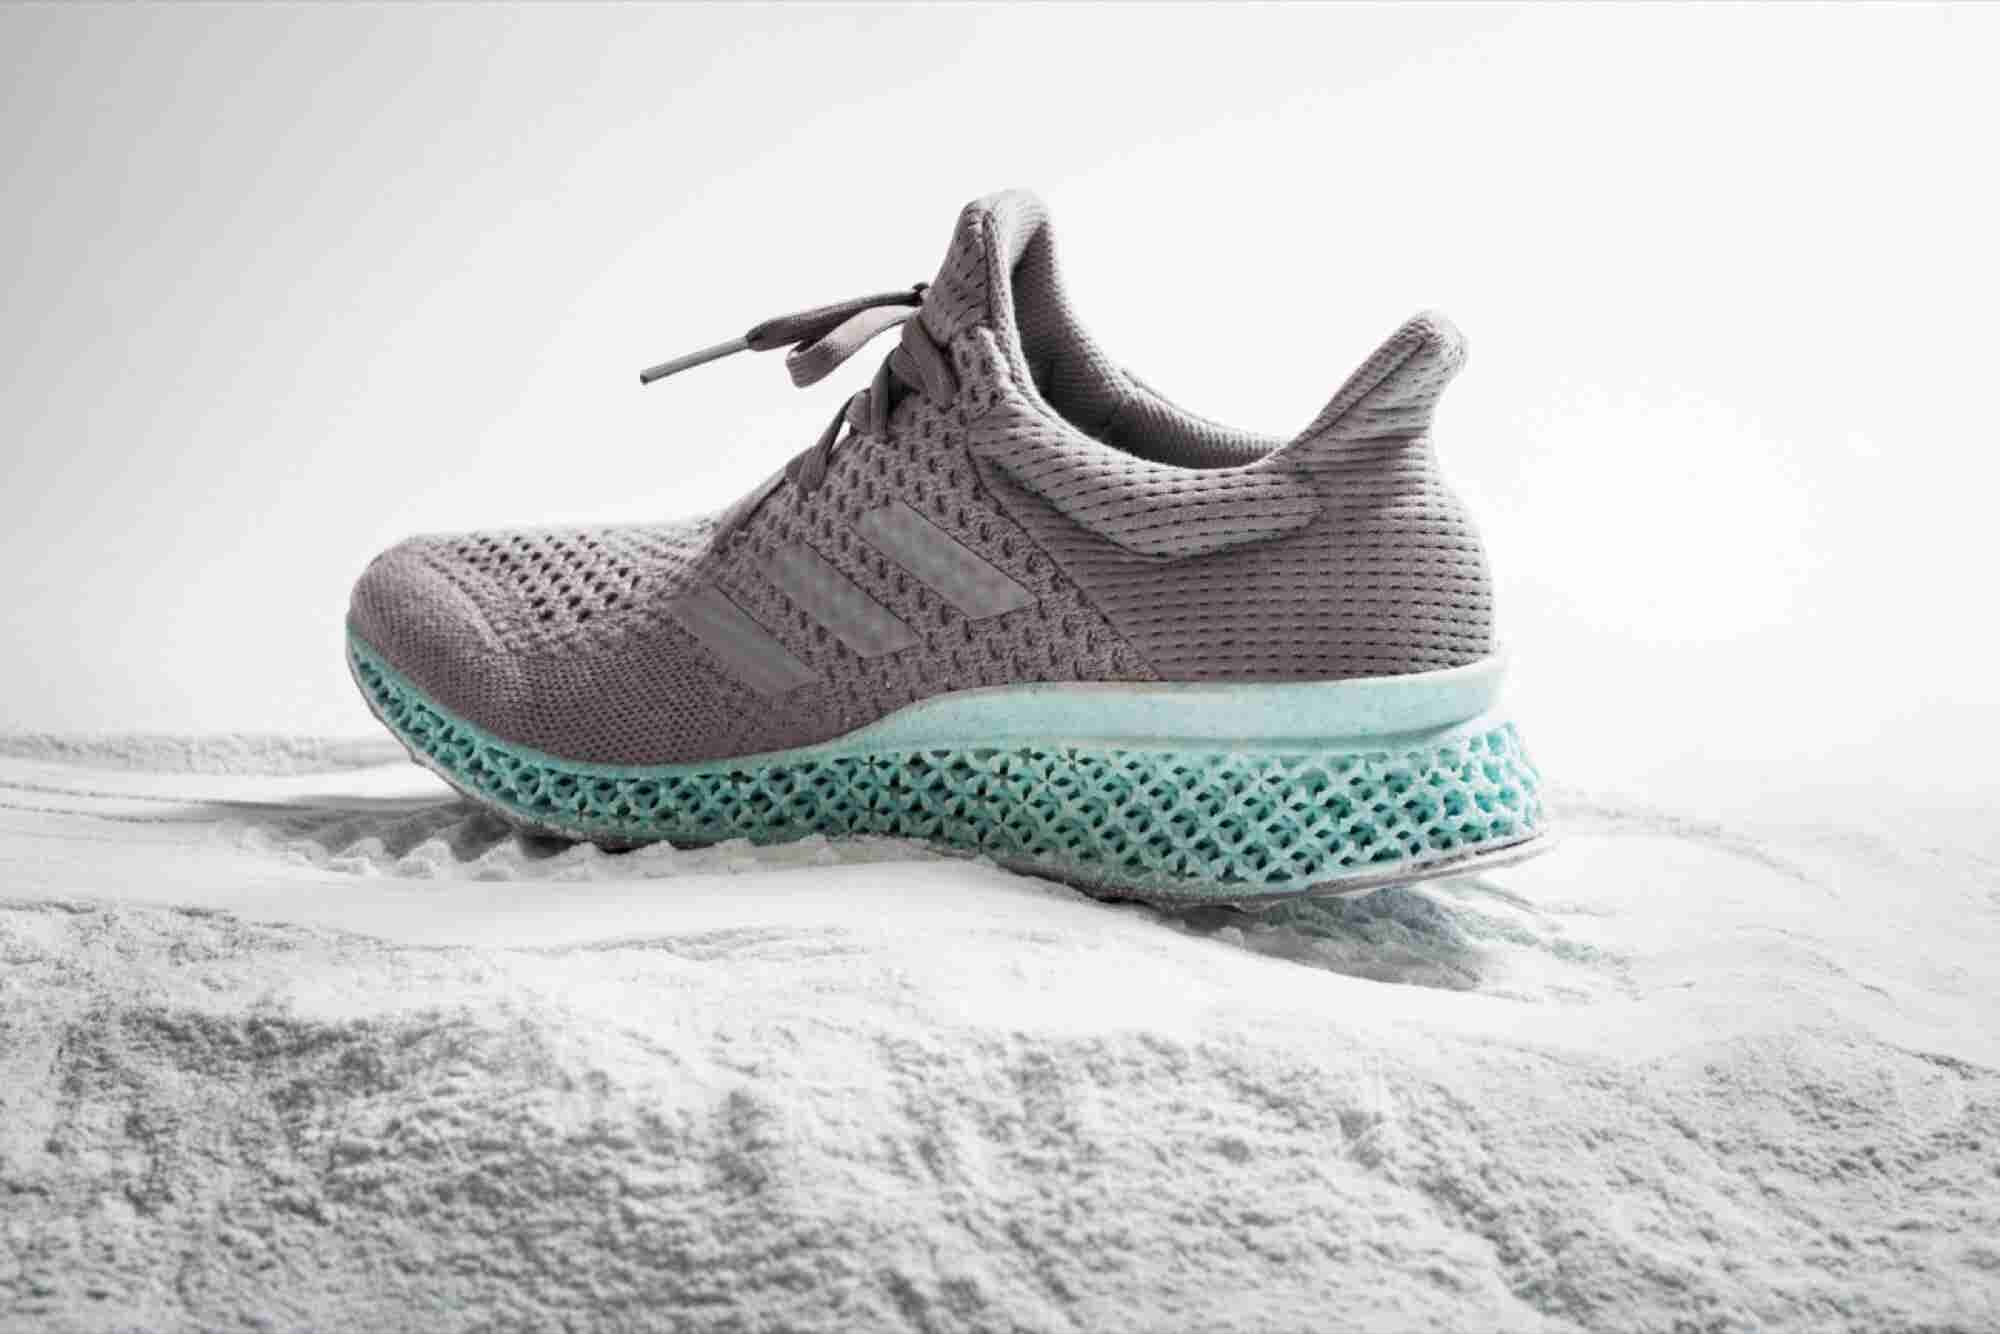 Adidas Made a 3-D Printed Shoe Out of Plastic Waste From the Ocean